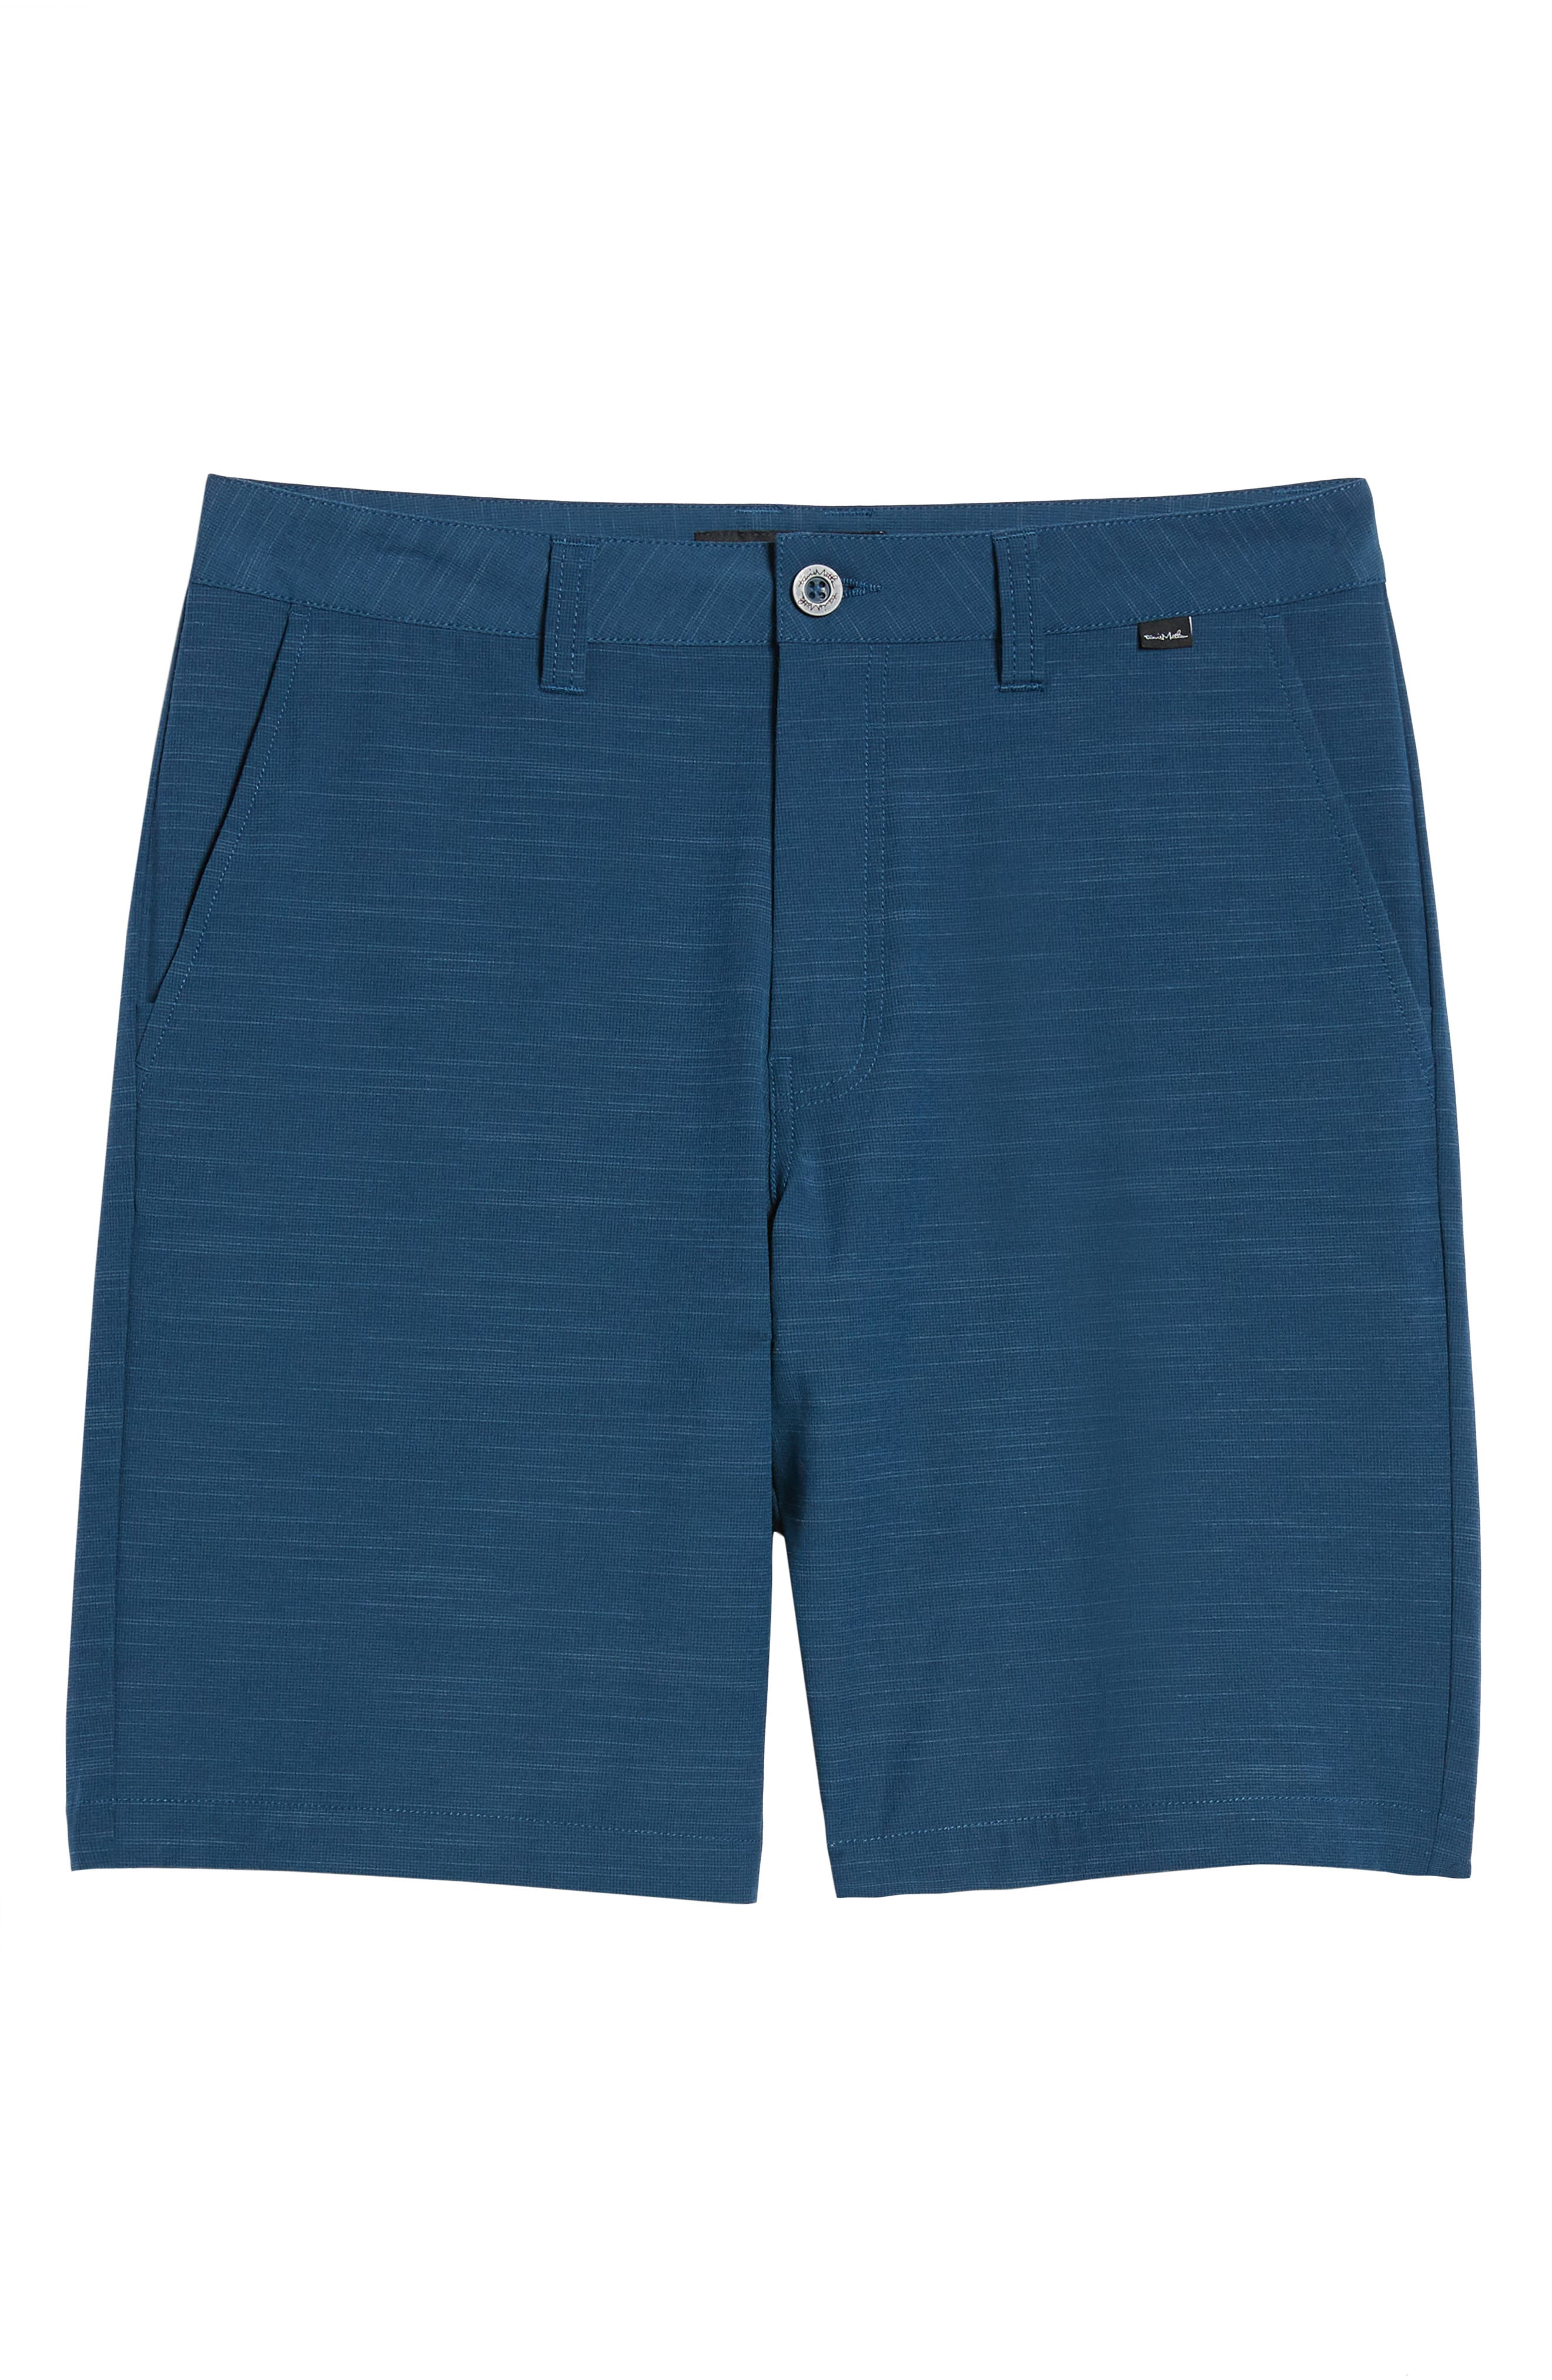 Undertow Hybrid Shorts,                             Alternate thumbnail 6, color,                             BLUE WING TEAL